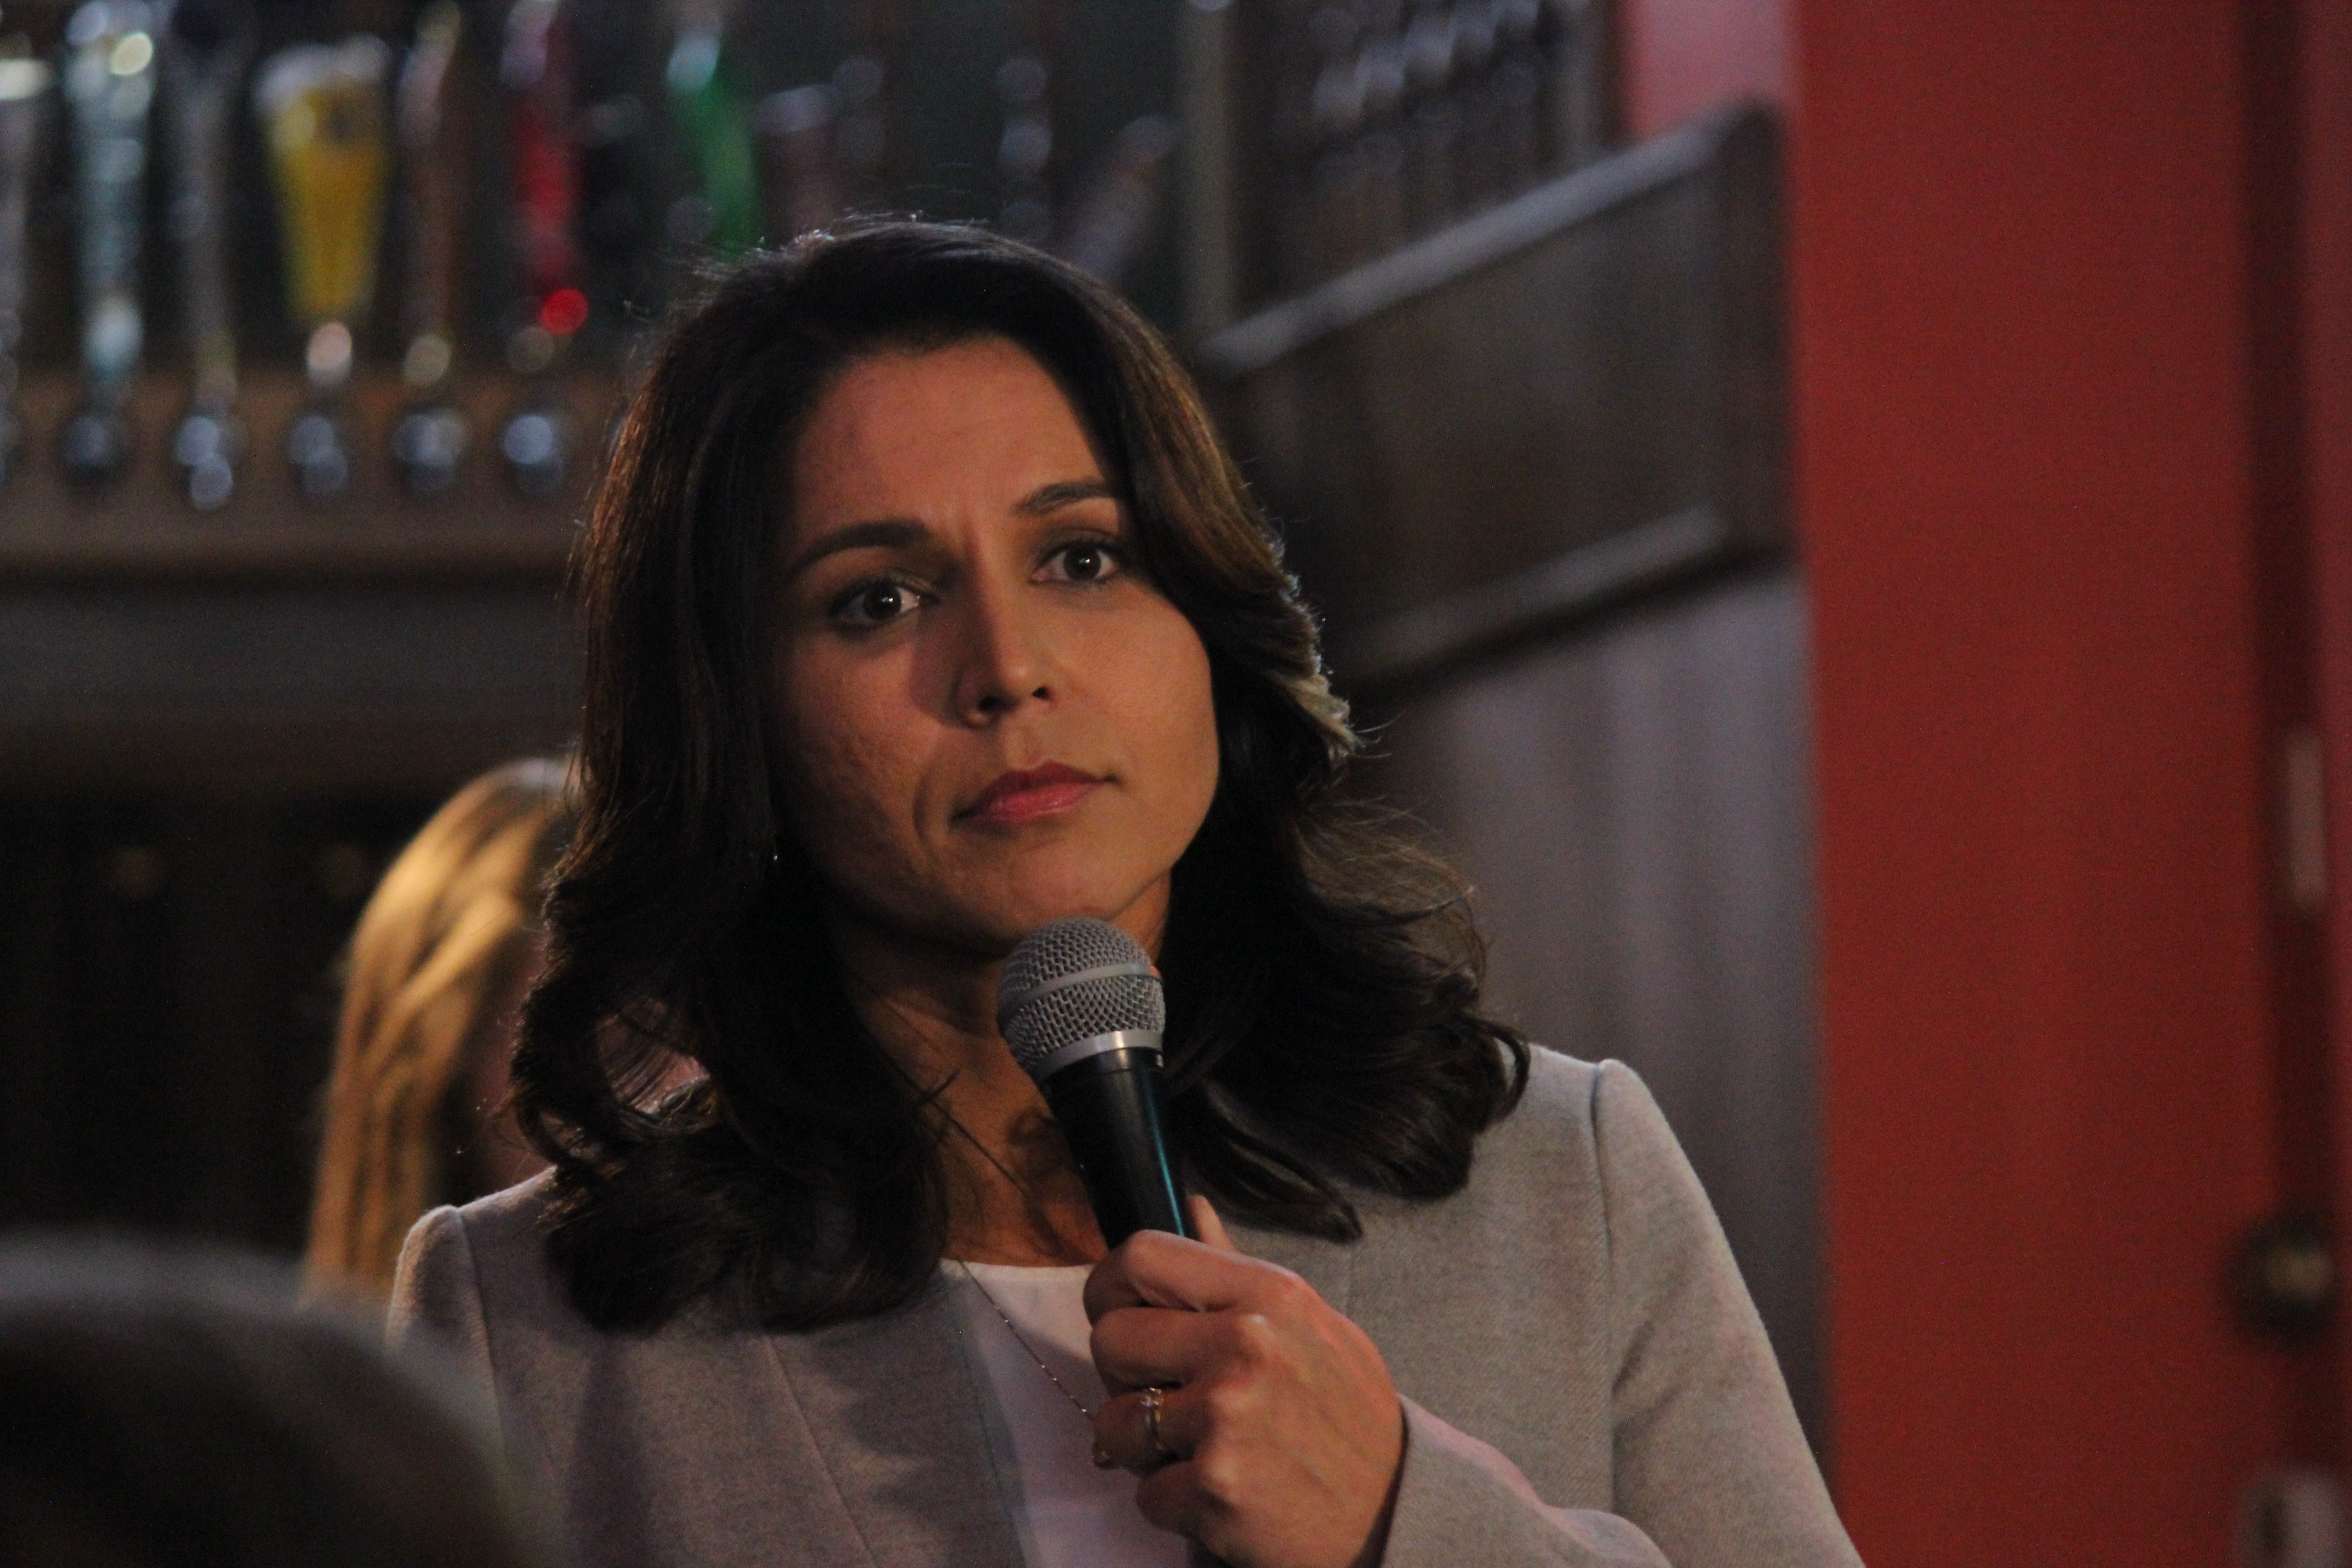 Tulsi Gabbard Speaks To Supports During Campaign Event Matt Johnson Creative Commons